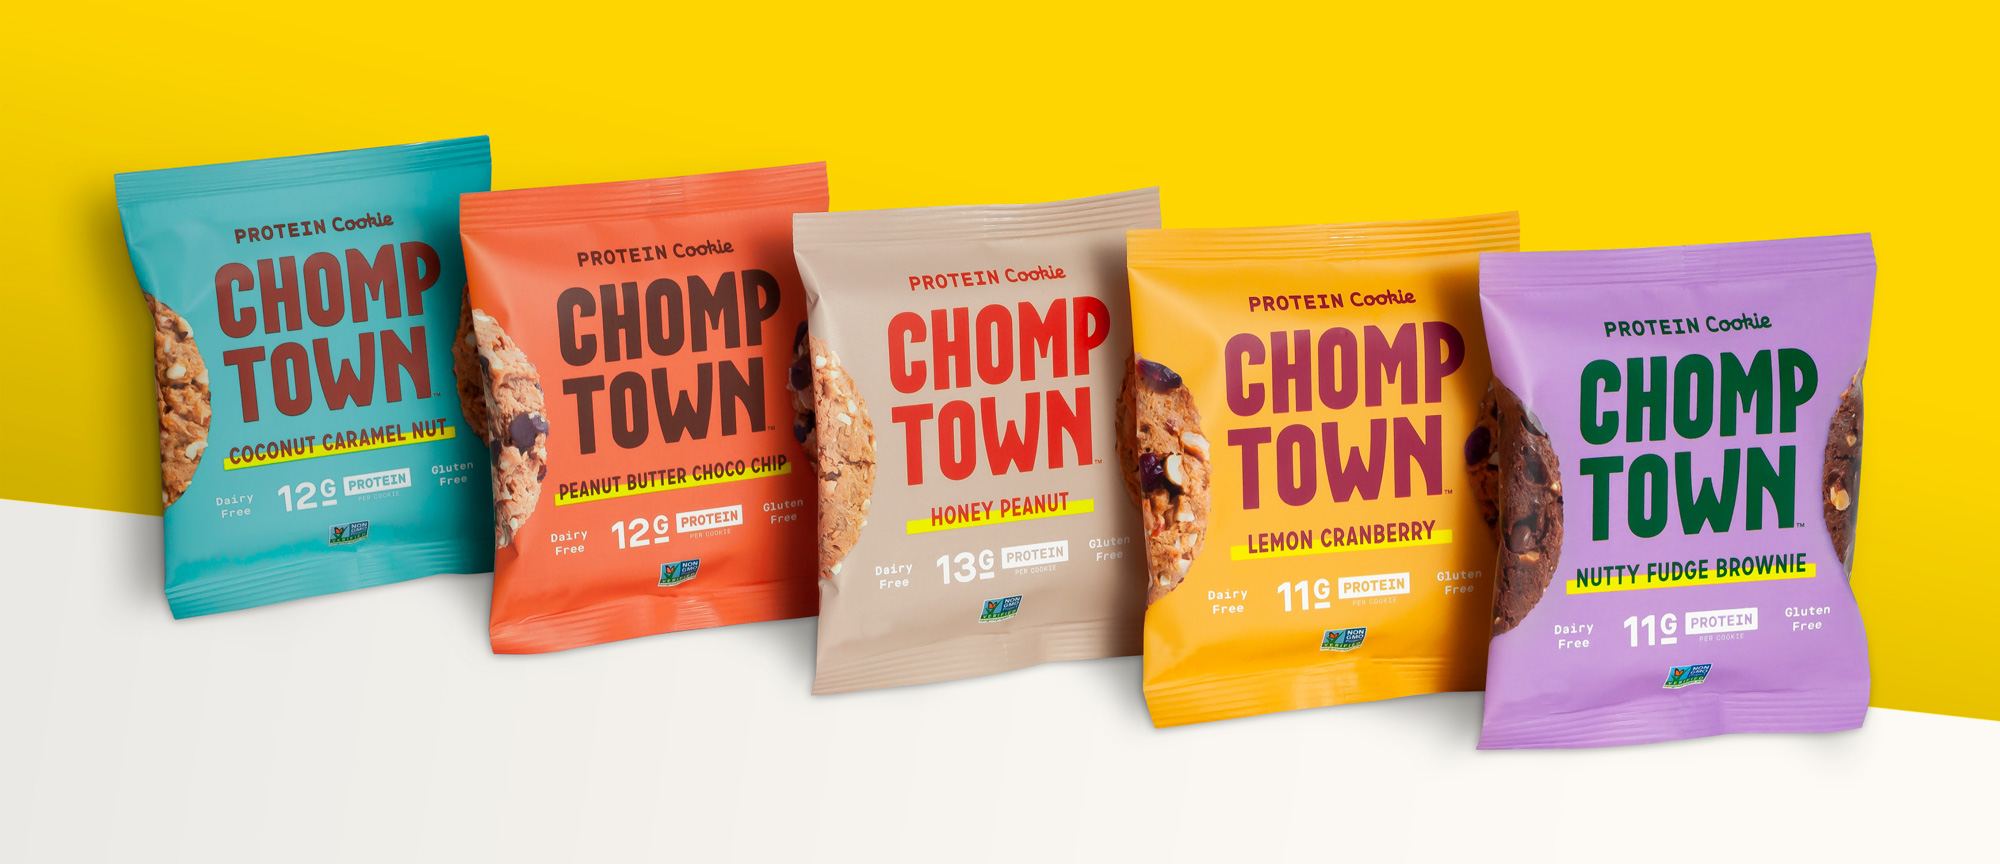 New Logo, Identity, and Packaging for Chomptown Cookies by Ptarmak